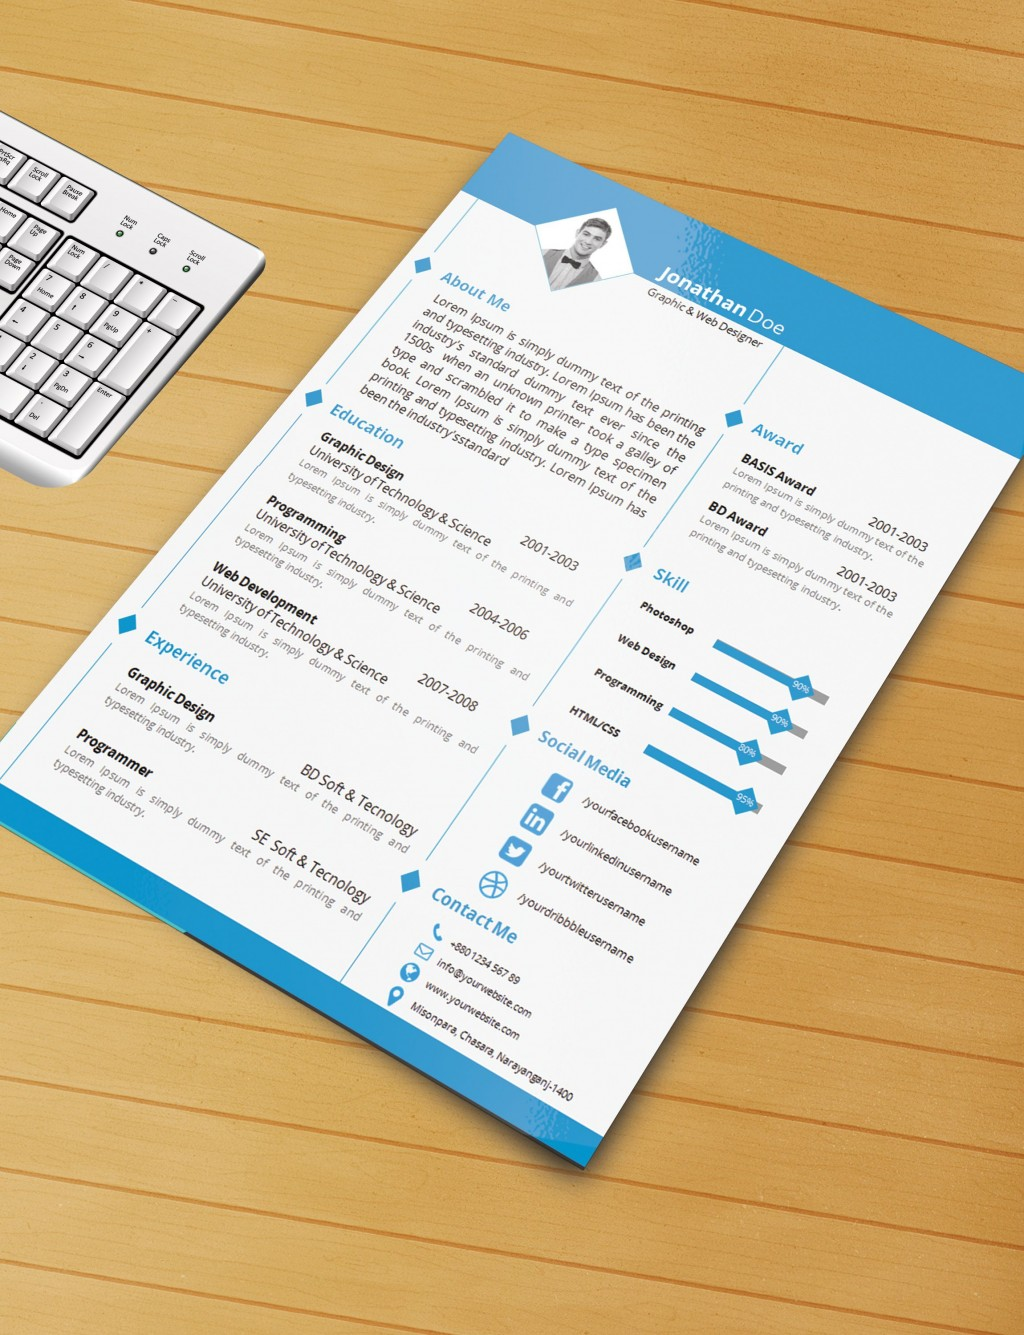 004 Outstanding Microsoft Word Template Download High Definition  2010 Resume Free 2007 Error InvoiceLarge